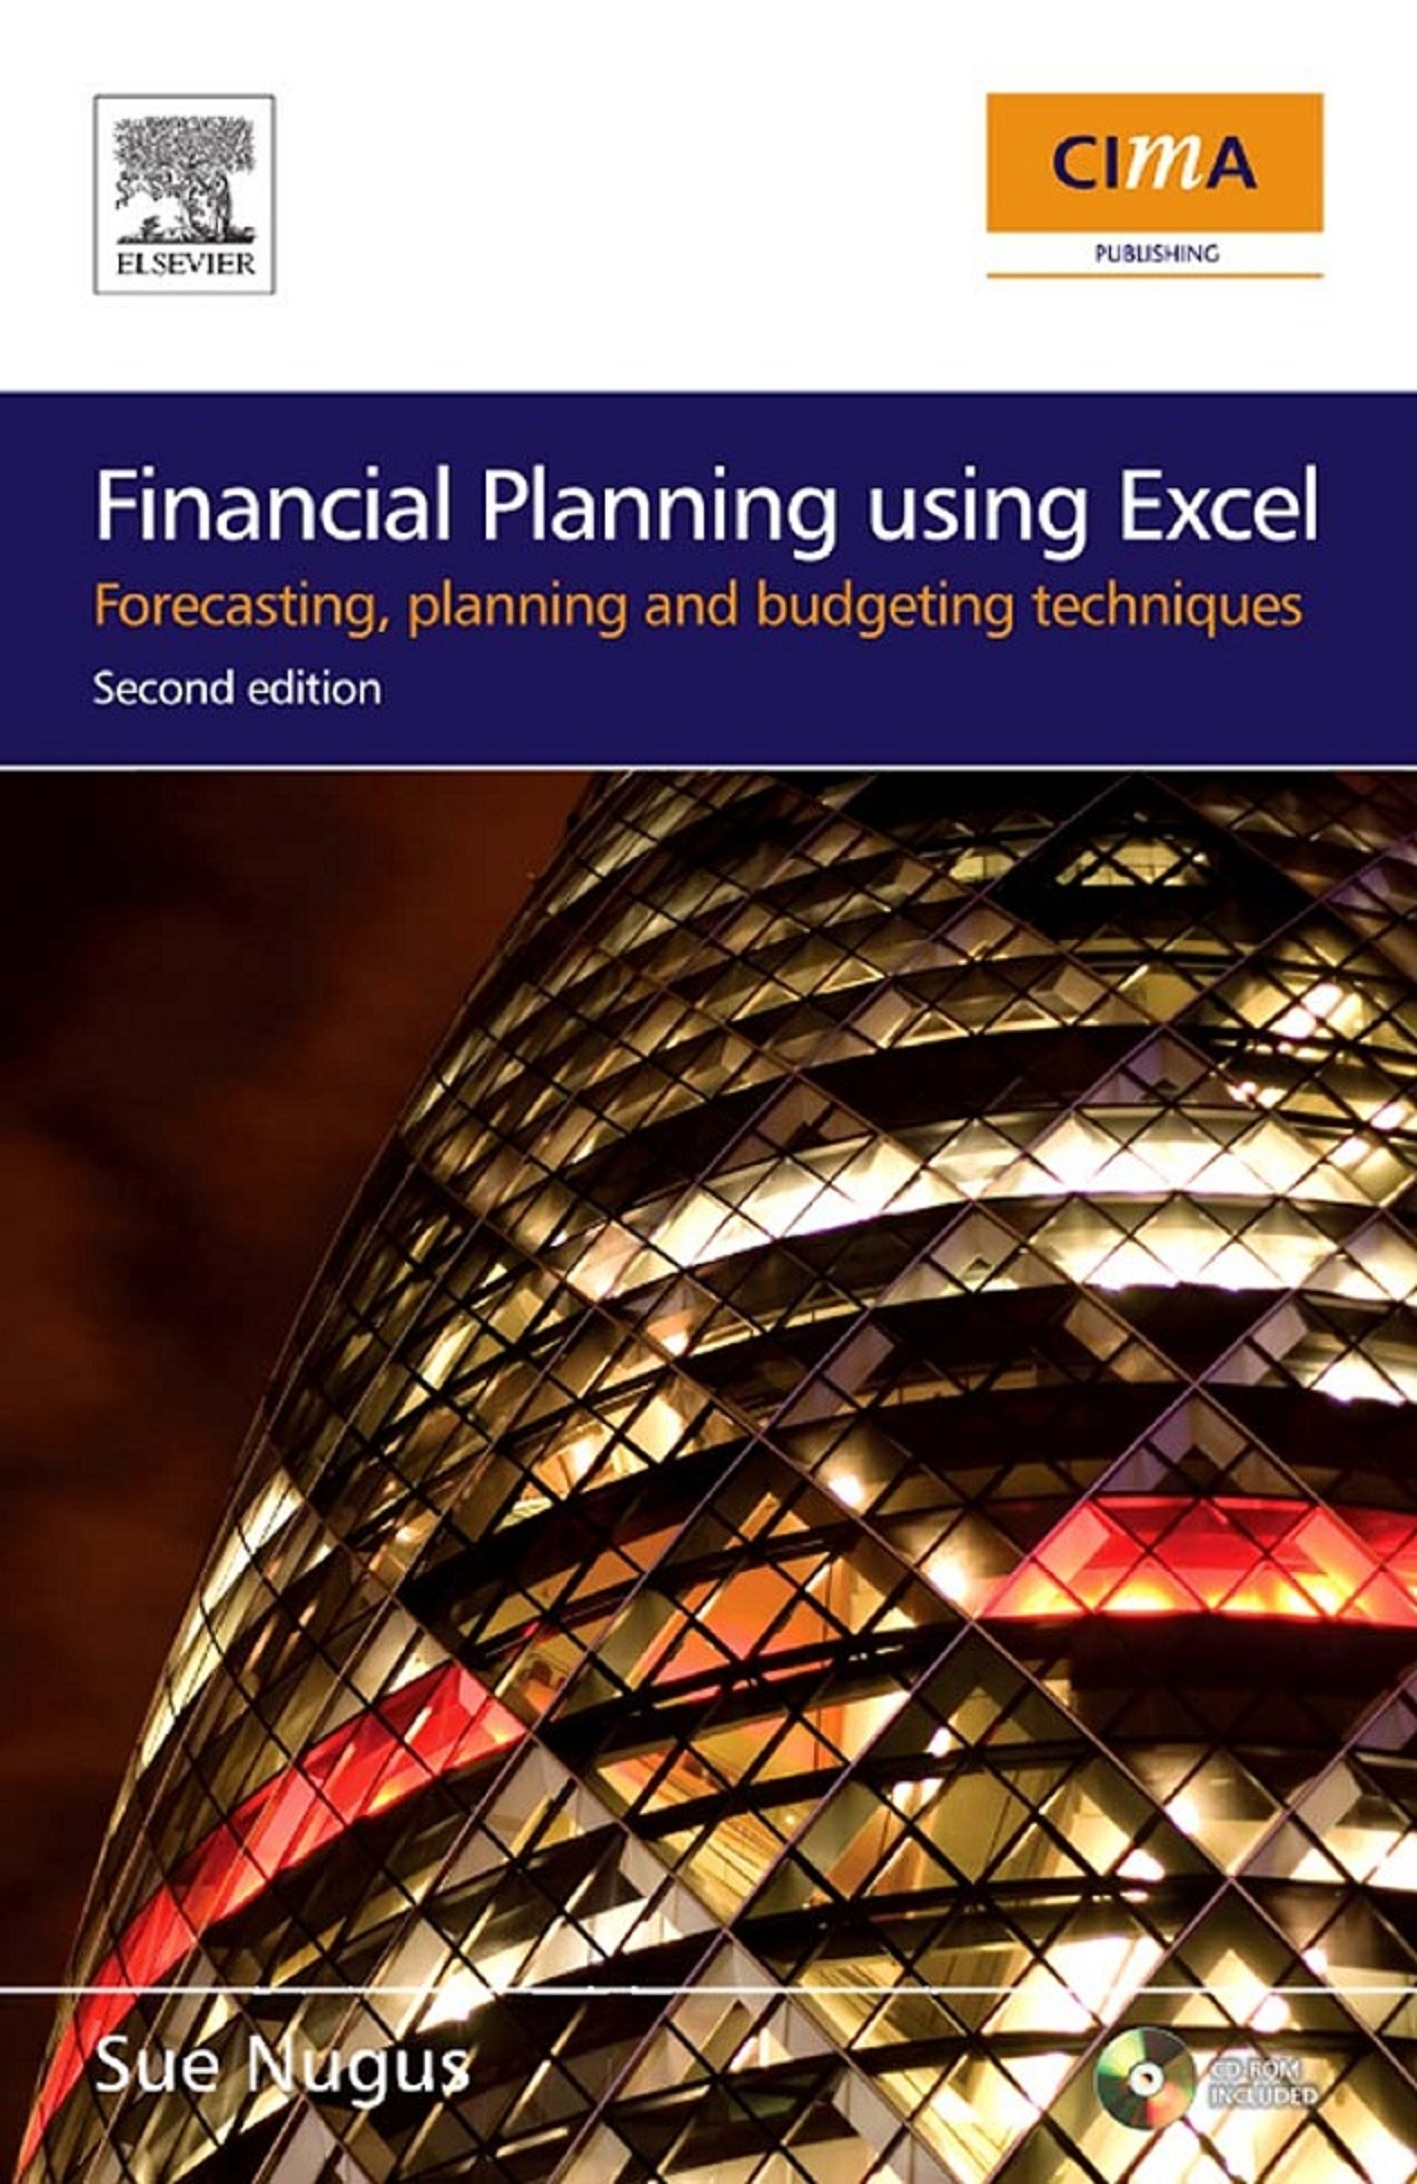 Download Ebook Financial Planning Using Excel (2nd ed.) by Sue Nugus Pdf